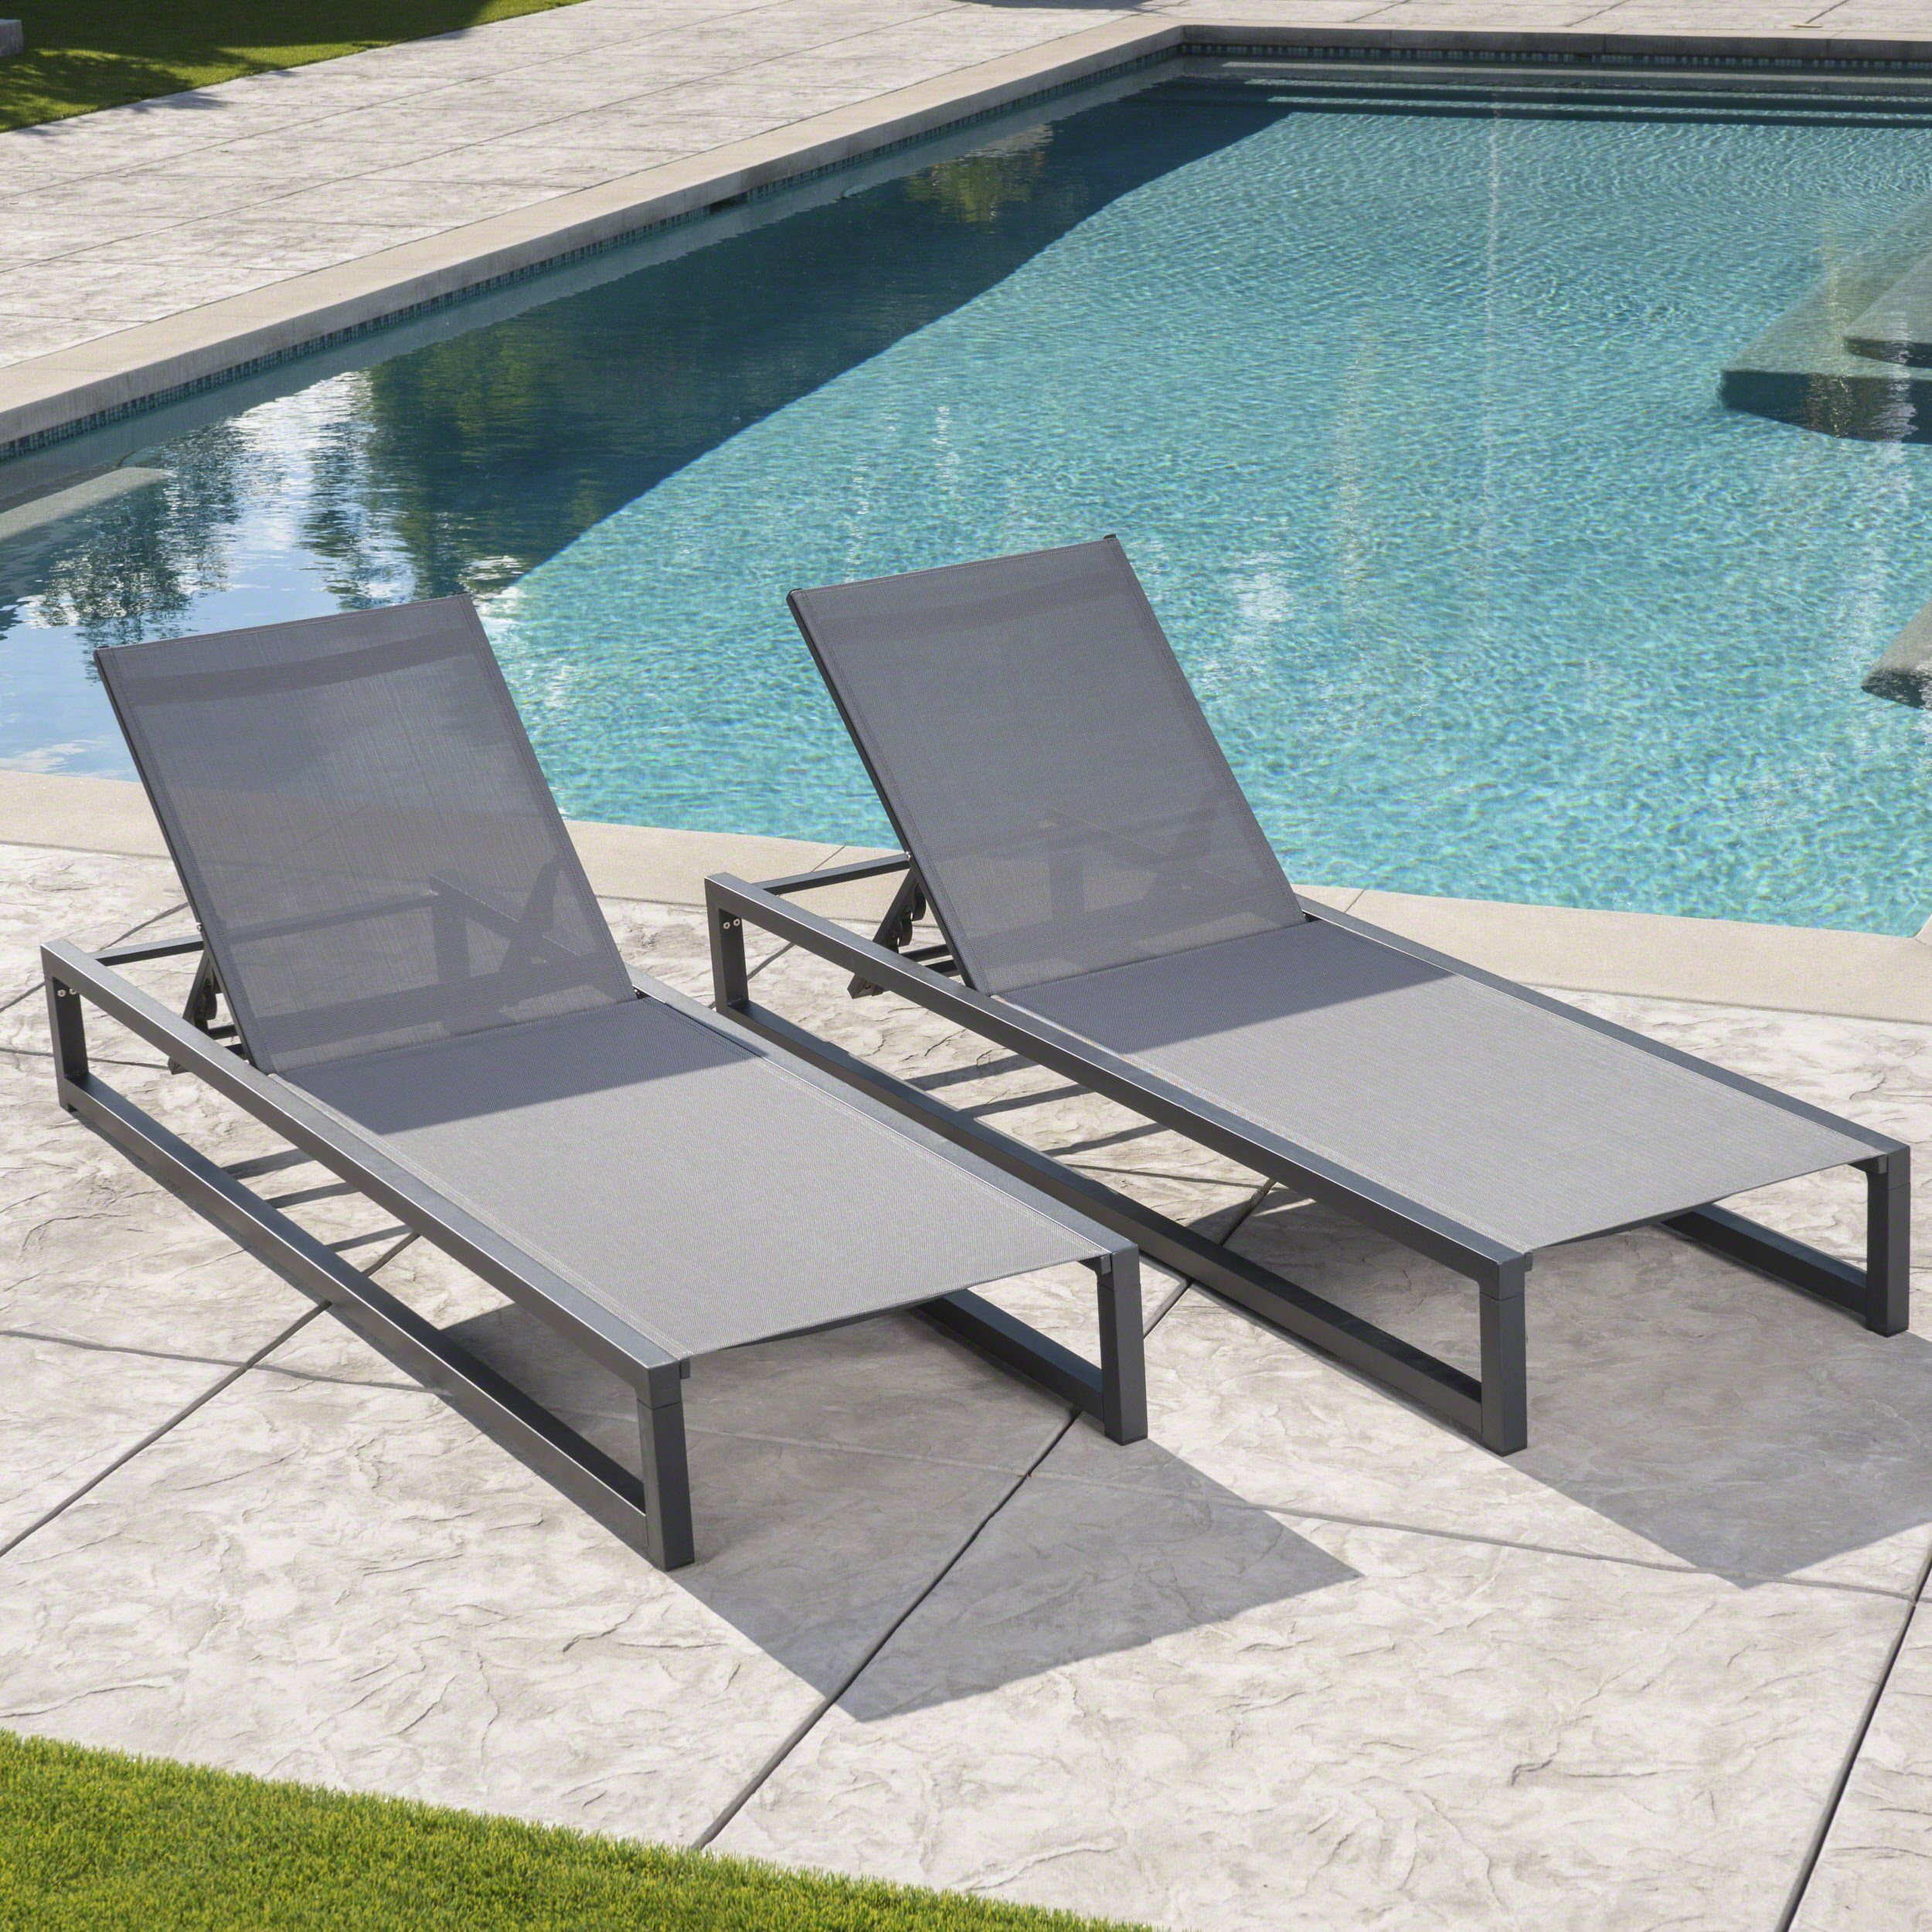 Power Chill This Is The Kind Of Lounger Where You Take Calls And Give Orders Modern Outdoor Lounge Chair Pool Patio Furniture Lounge Chair Outdoor